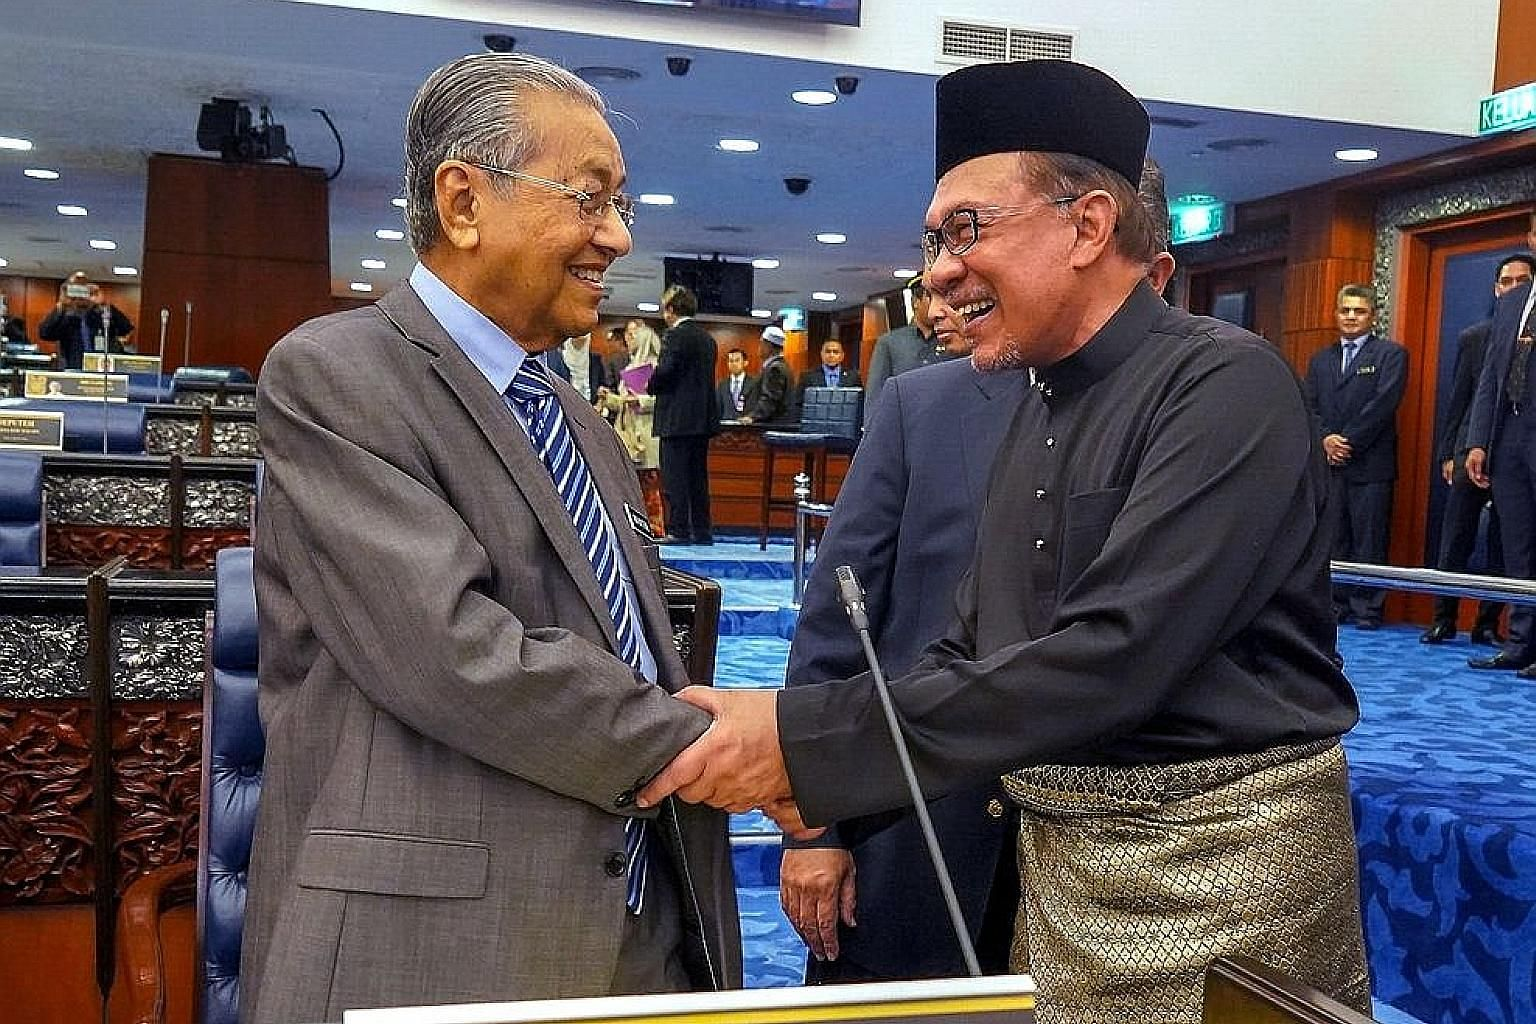 Malaysian Prime Minister Mahathir Mohamad and his designated successor and former protege Anwar Ibrahim in a photo taken last year.